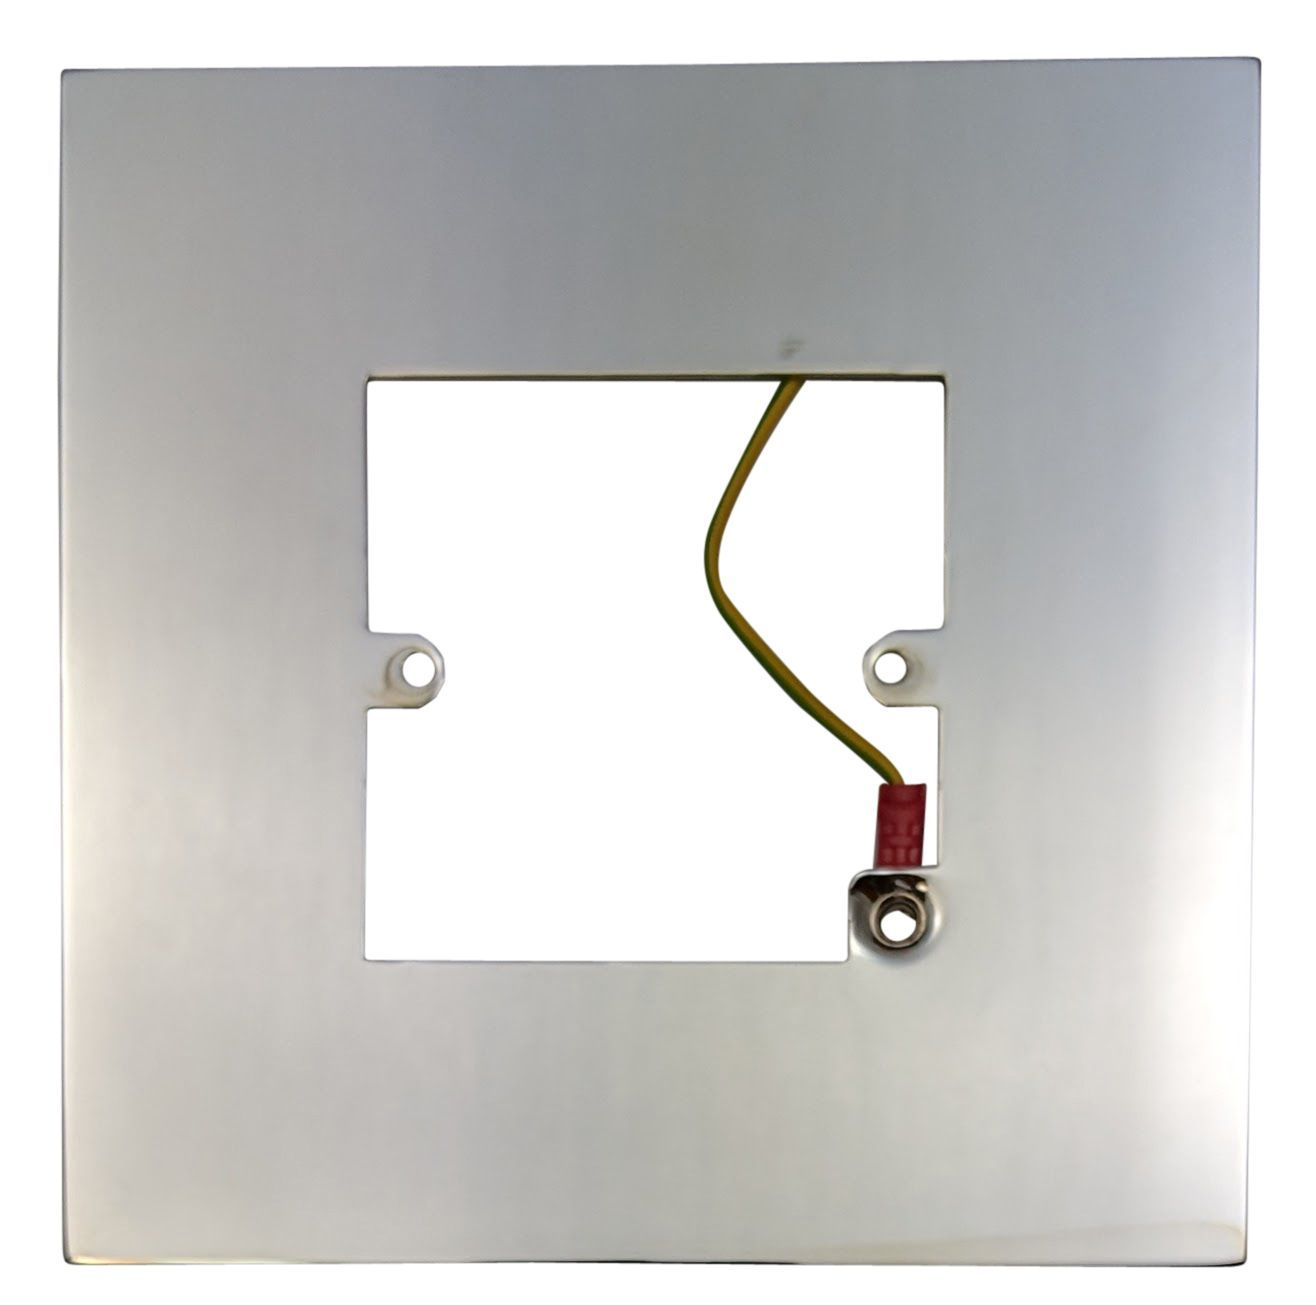 Chrome Light Switch Surround: G&H 809C Polished Chrome Finger Plate Surround 152mm x 152mm for Single  Plate,Lighting